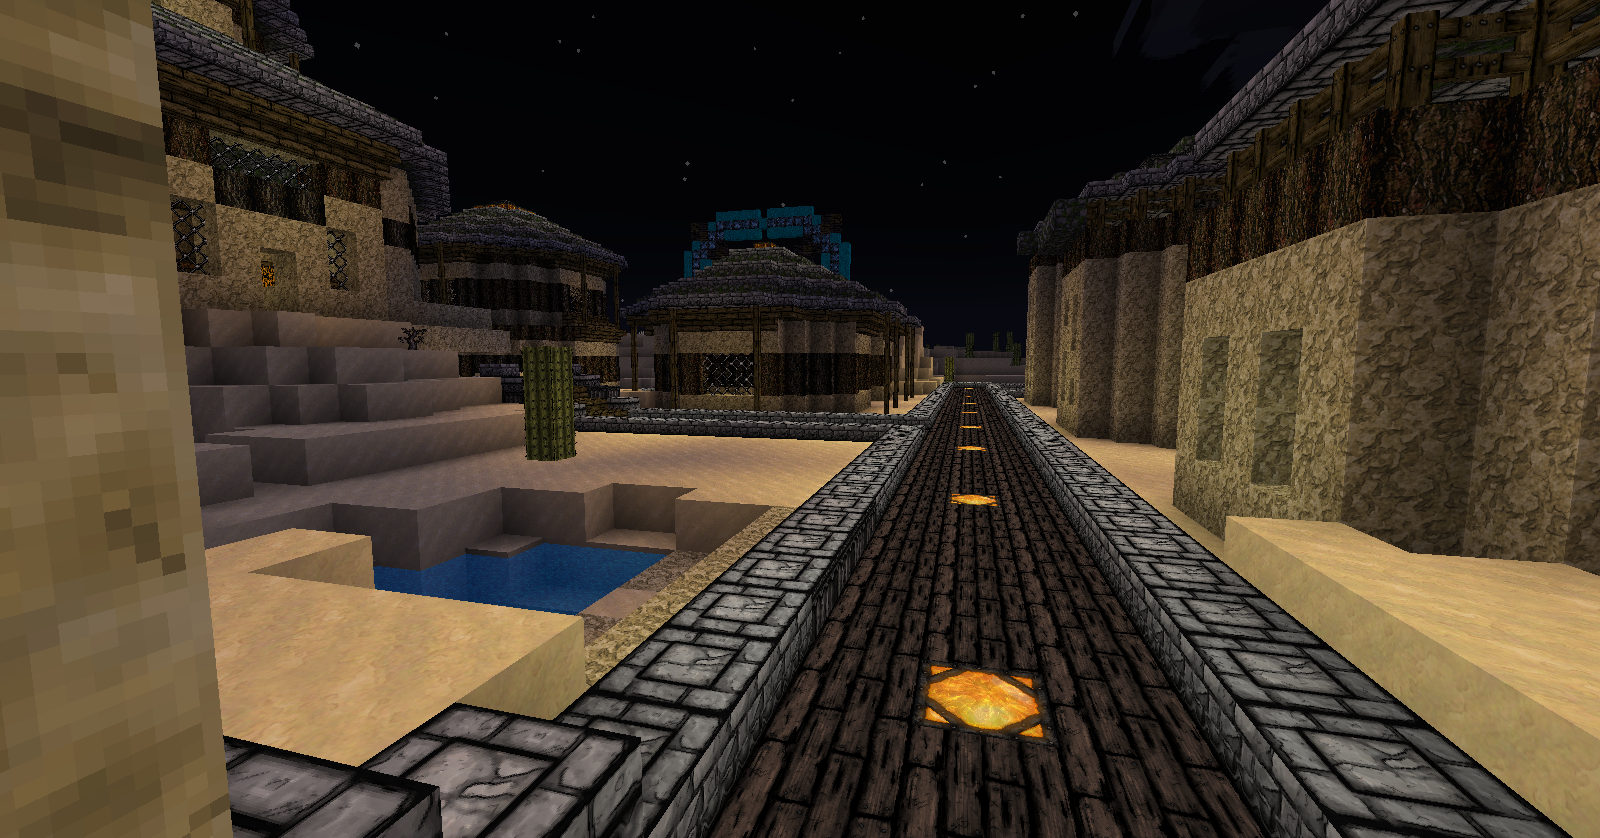 2012 10 21 11.12.10 [1.4.2]  VonDoomCraft